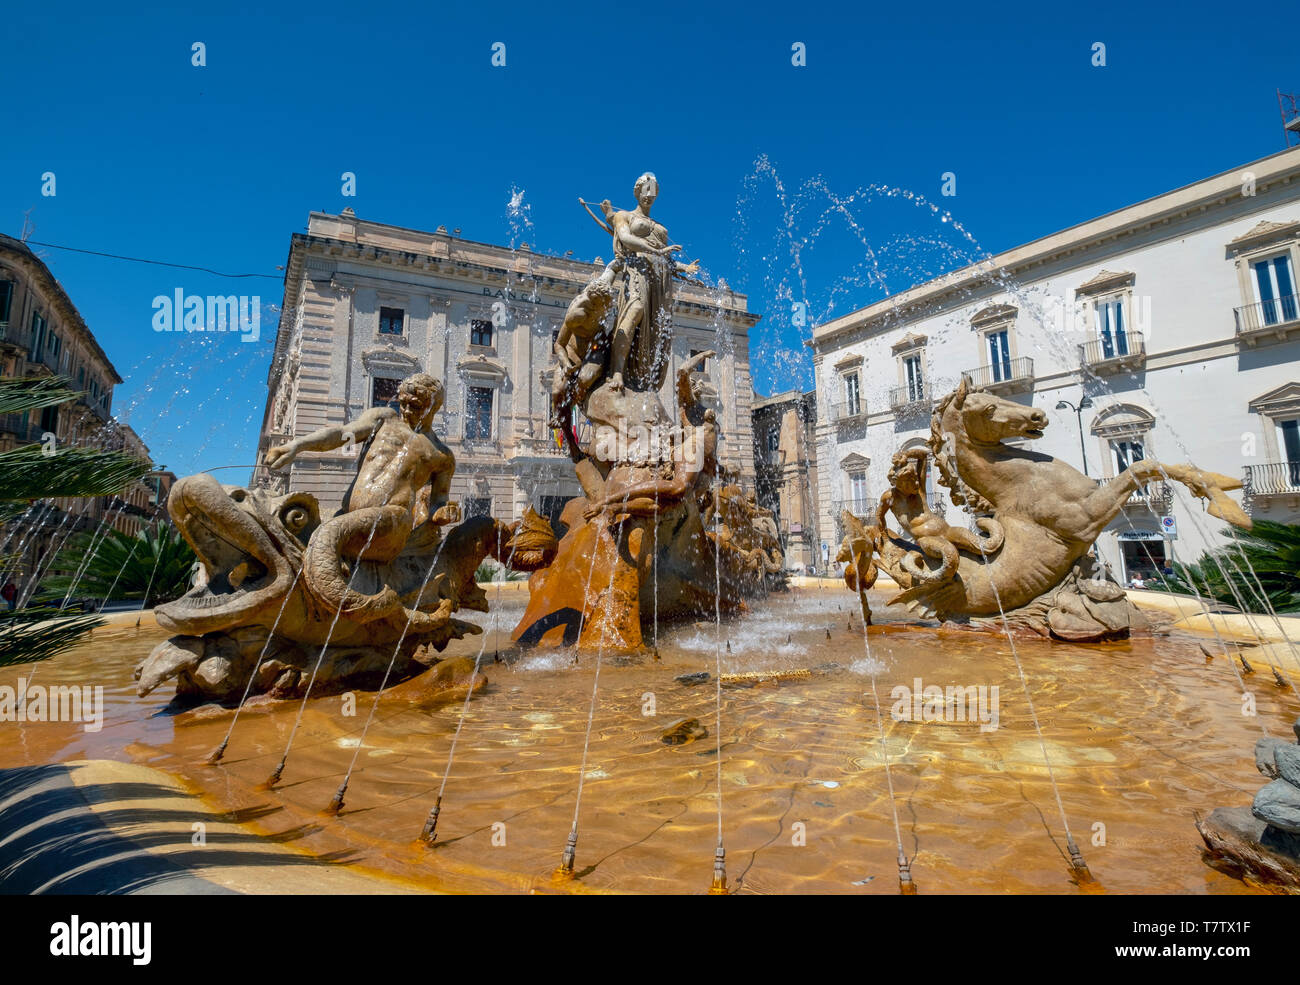 Artemis Fountain  (Diana Fountain) on Archimedes Square (Piazza Archimede)  Ortygia island, Syracuse, Sicily, Italy. - Stock Image